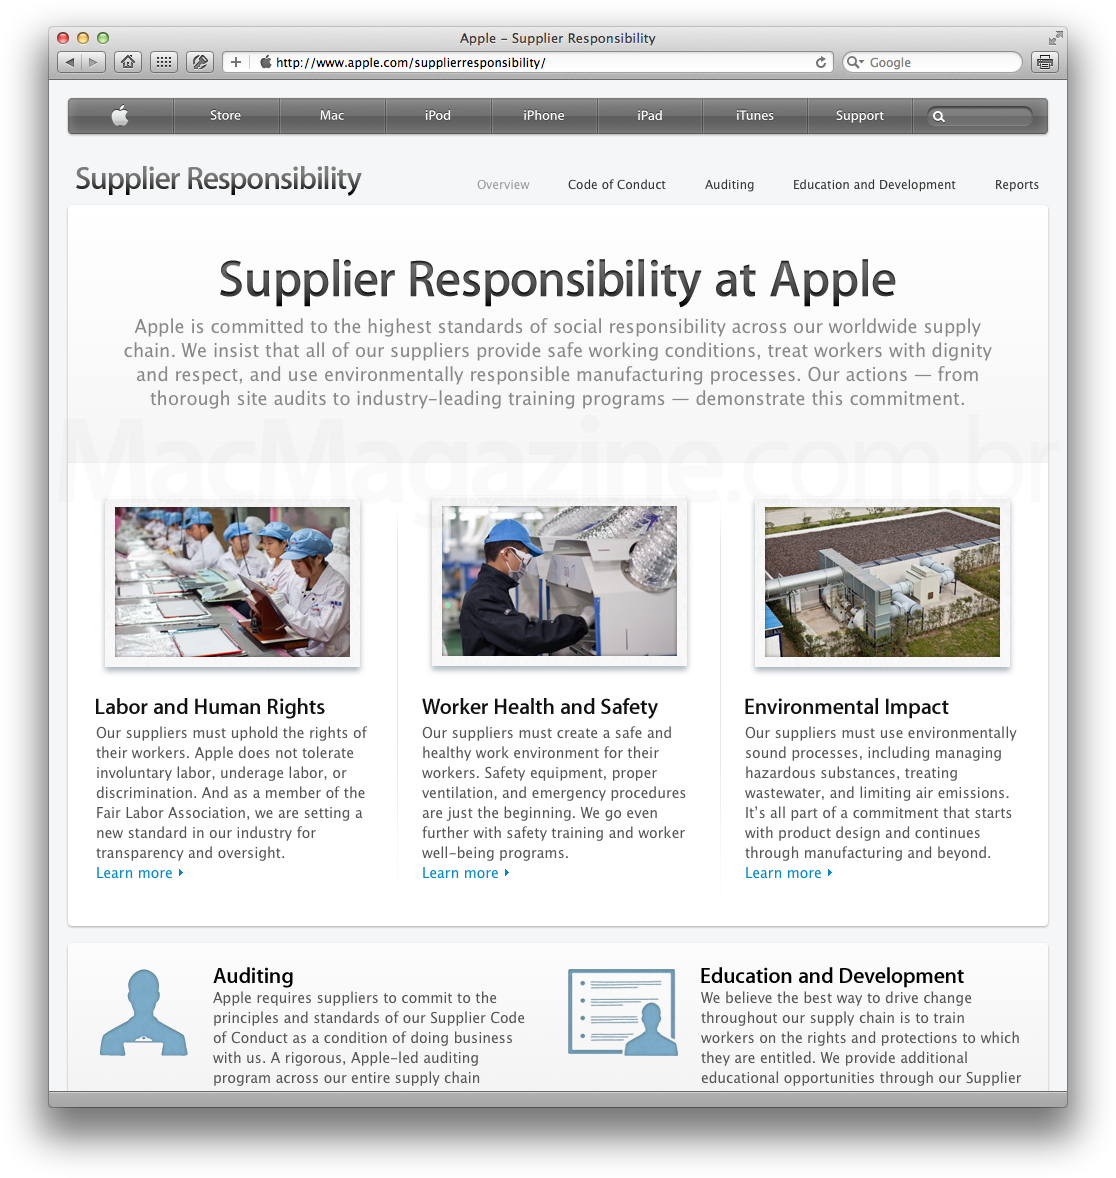 Apple - Supplier Responsibility